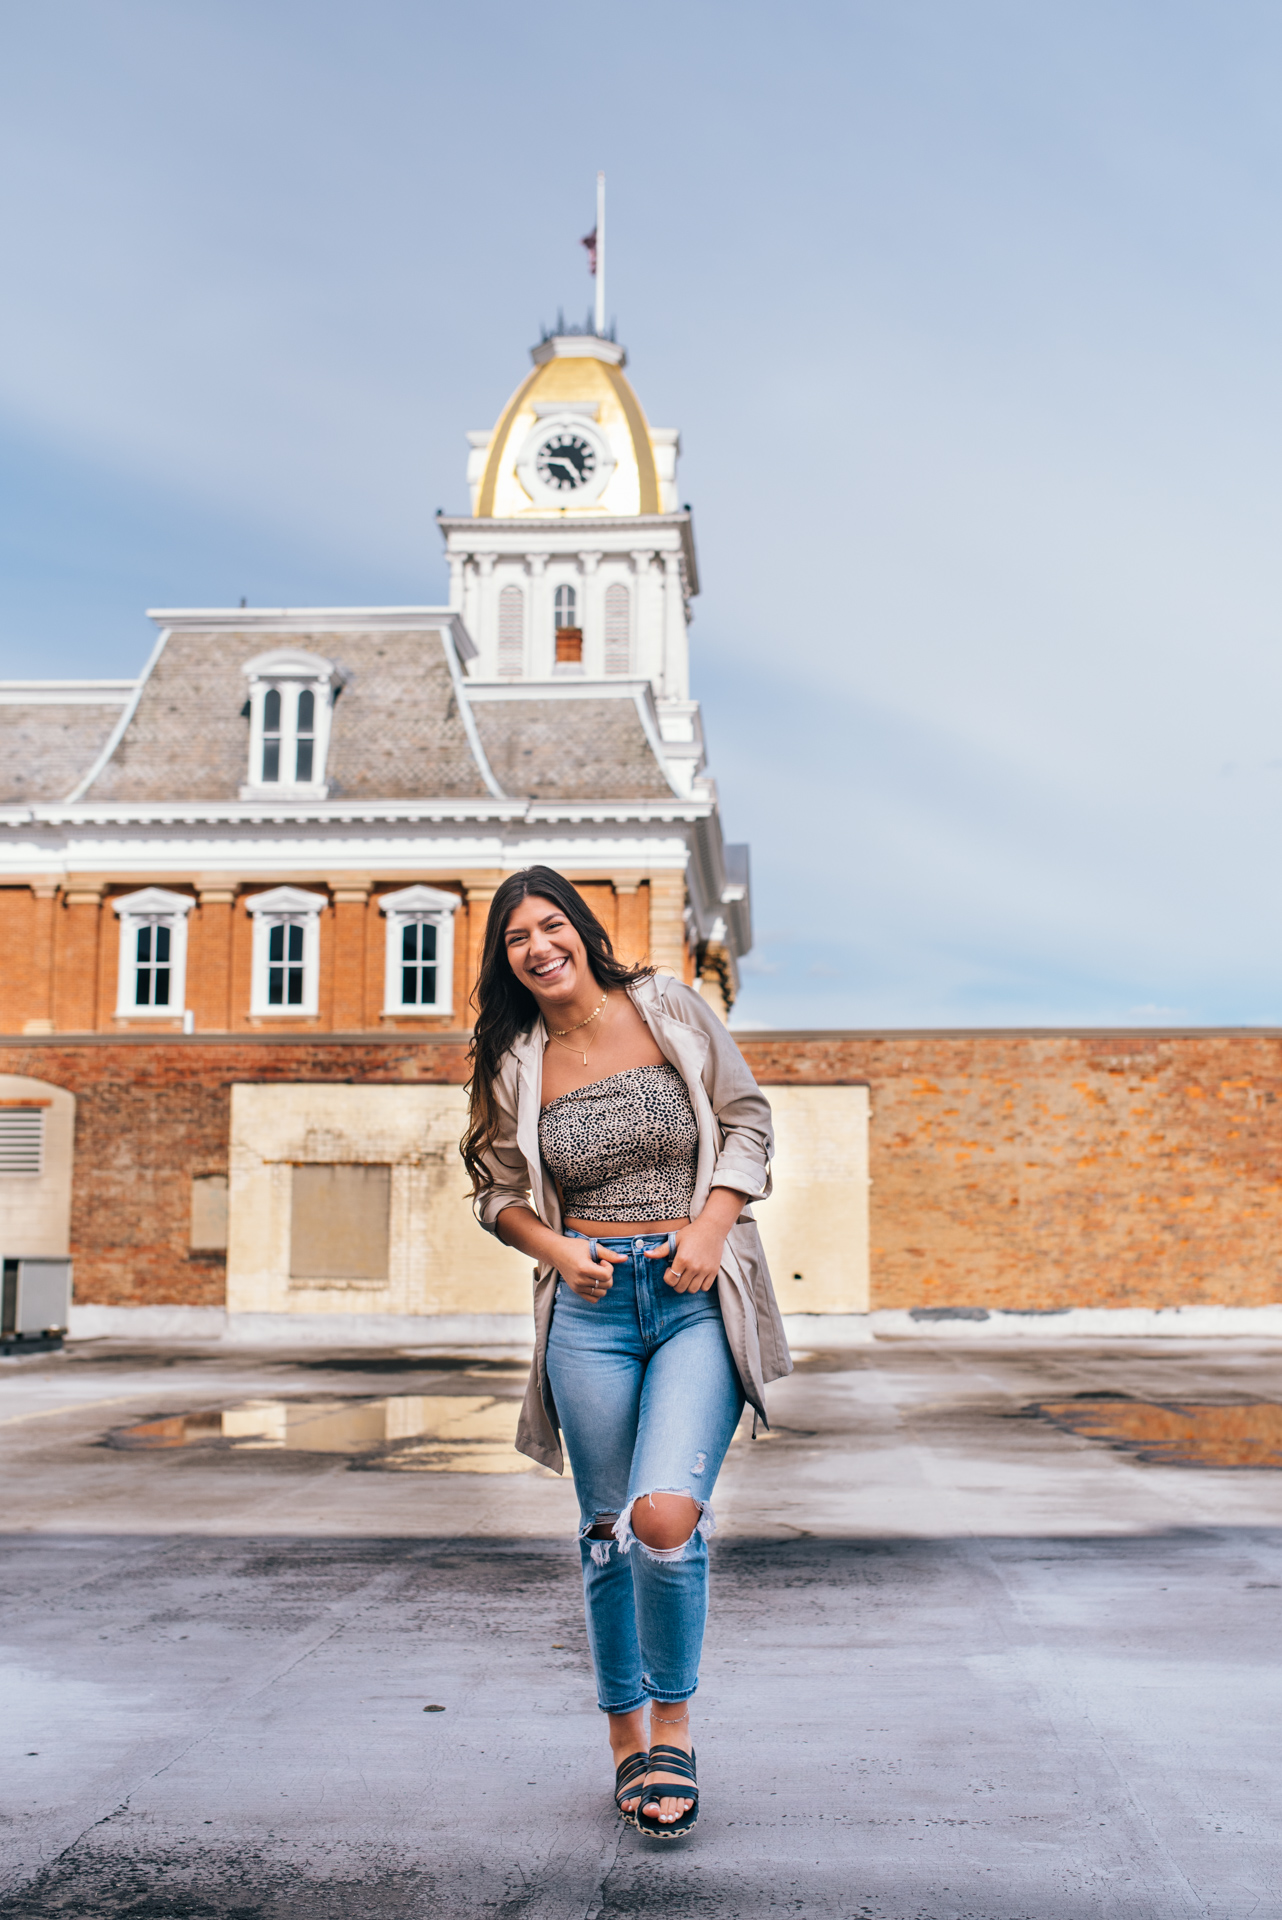 Indiana Area High School Senior Photography